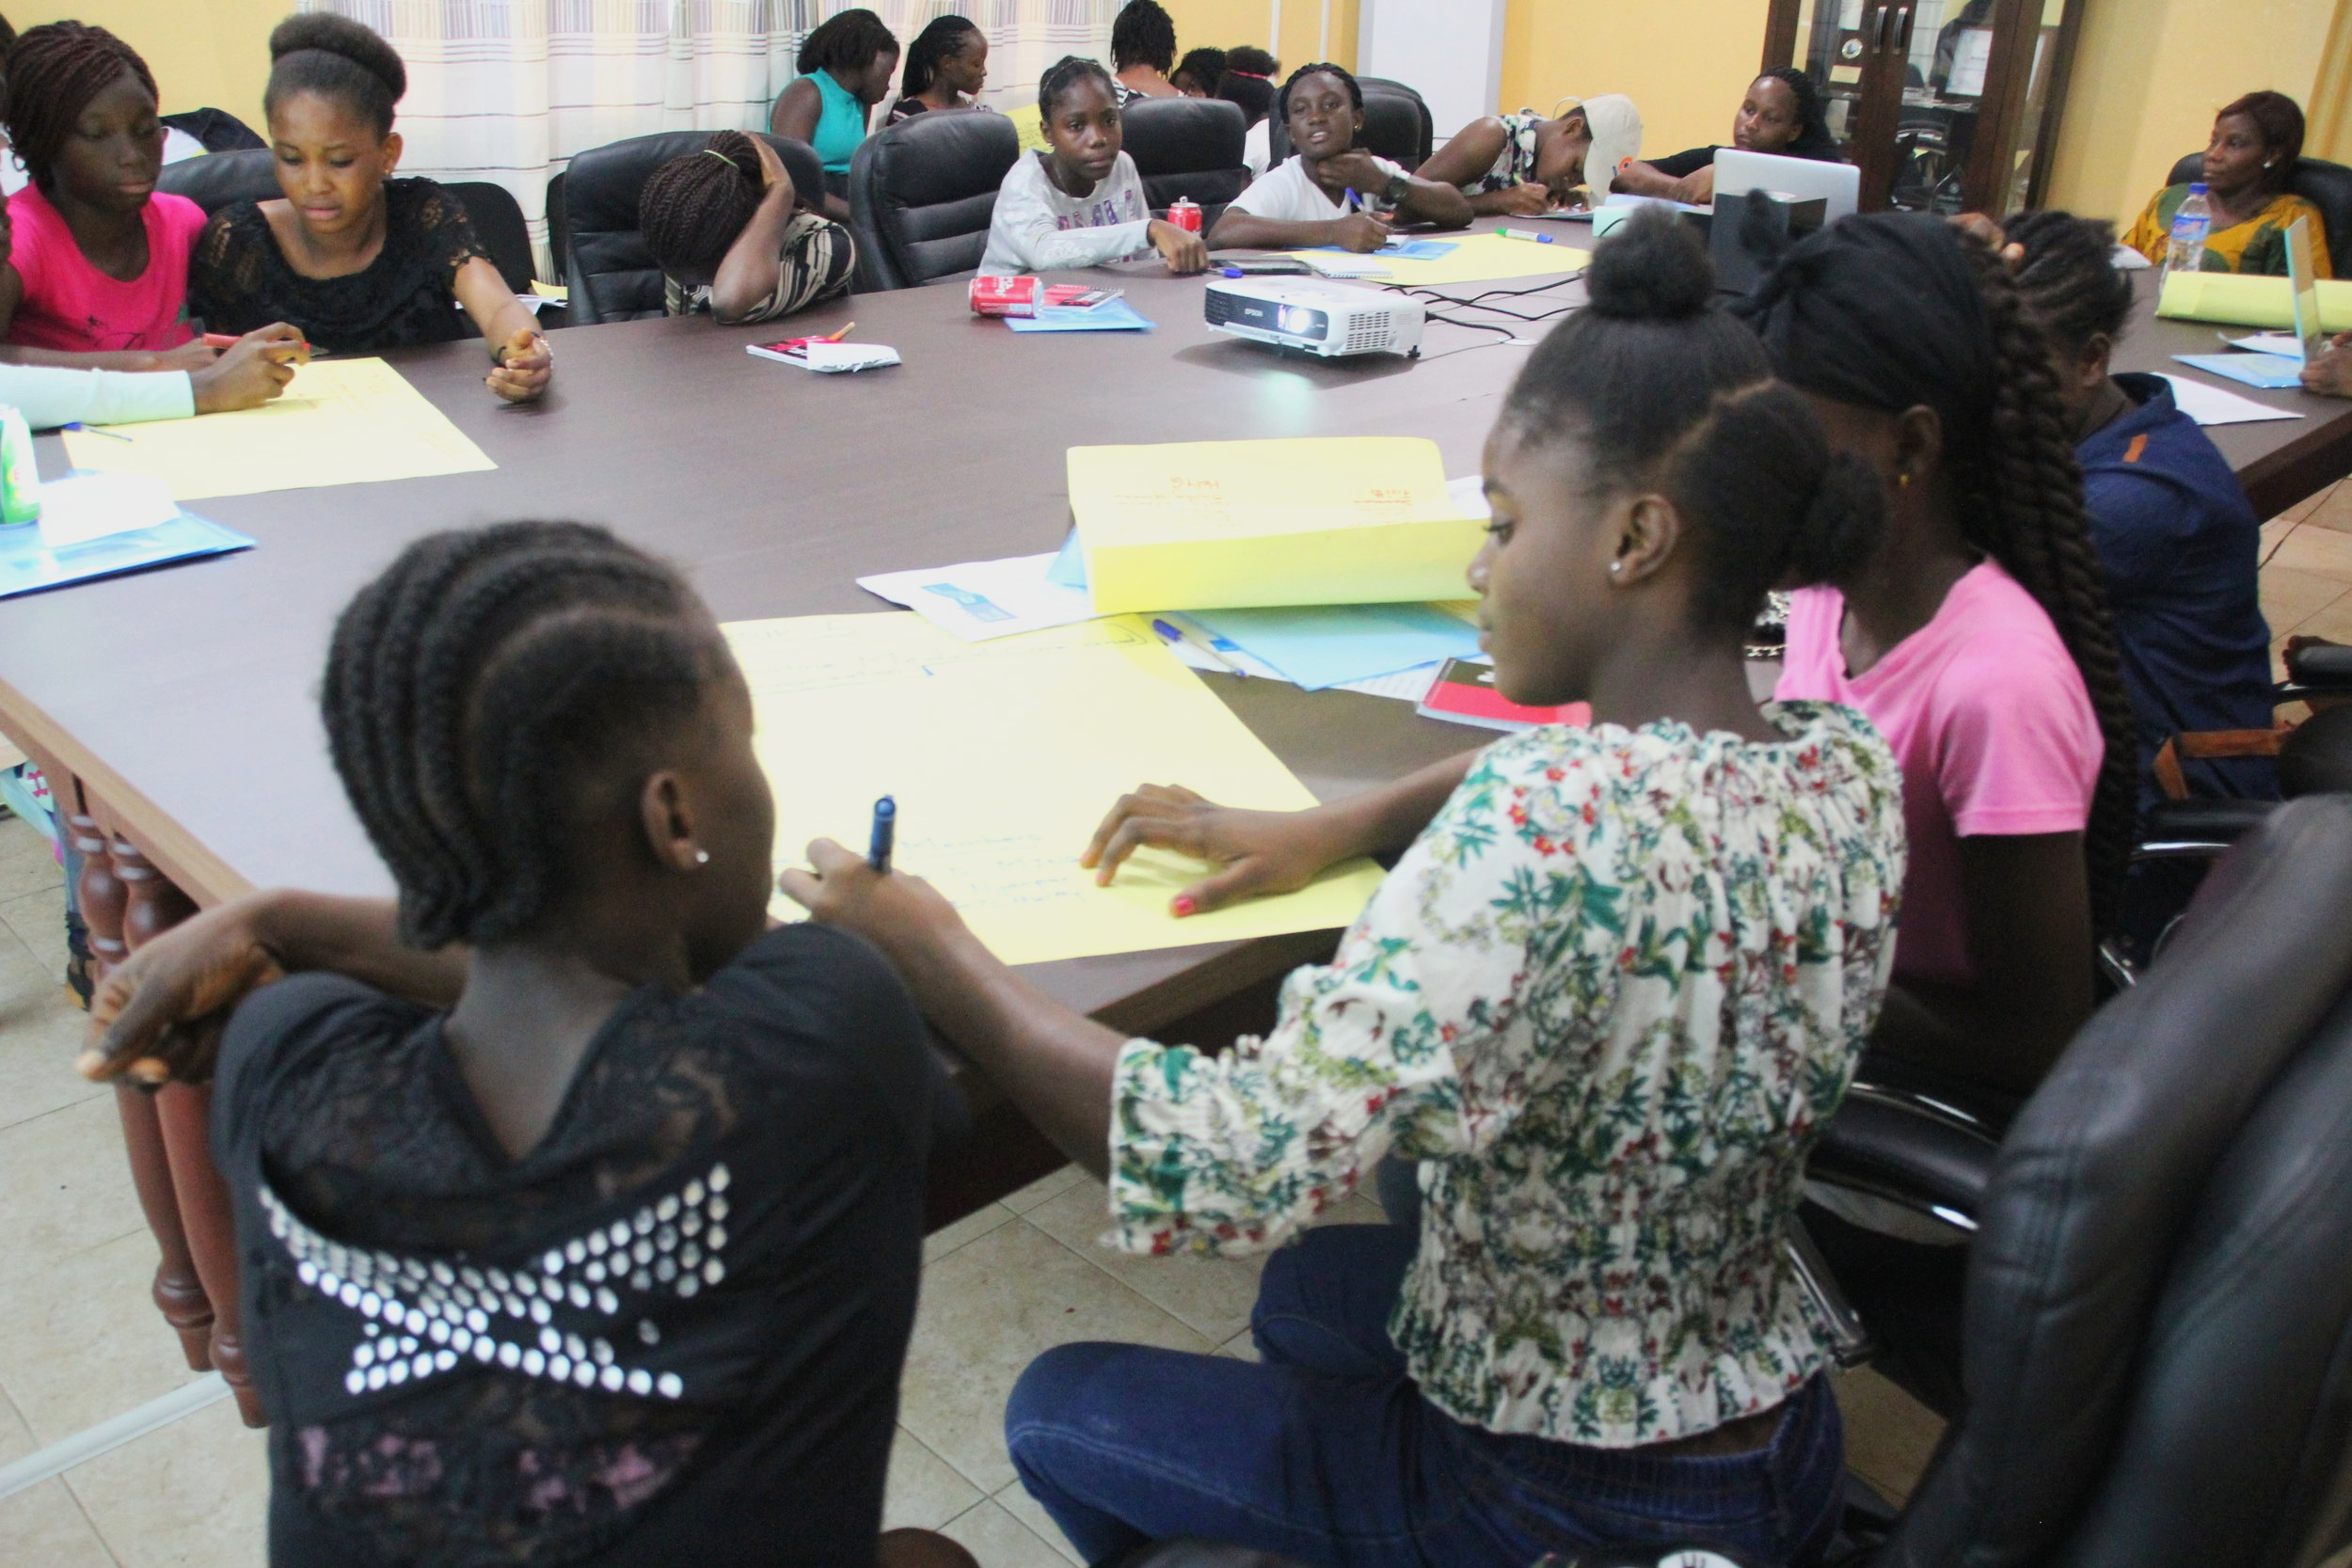 College and Career Readiness - Rebound Liberia hosts weekly literacy workshops where participants can improve on reading and writing skills through culturally salient and age appropriate material. Participants also get exposure to other opportunities which complement academics such as college readiness, preparing for the next steps after high school, accessing education in Liberia and abroad, and exploring other alternatives if education is not an option.